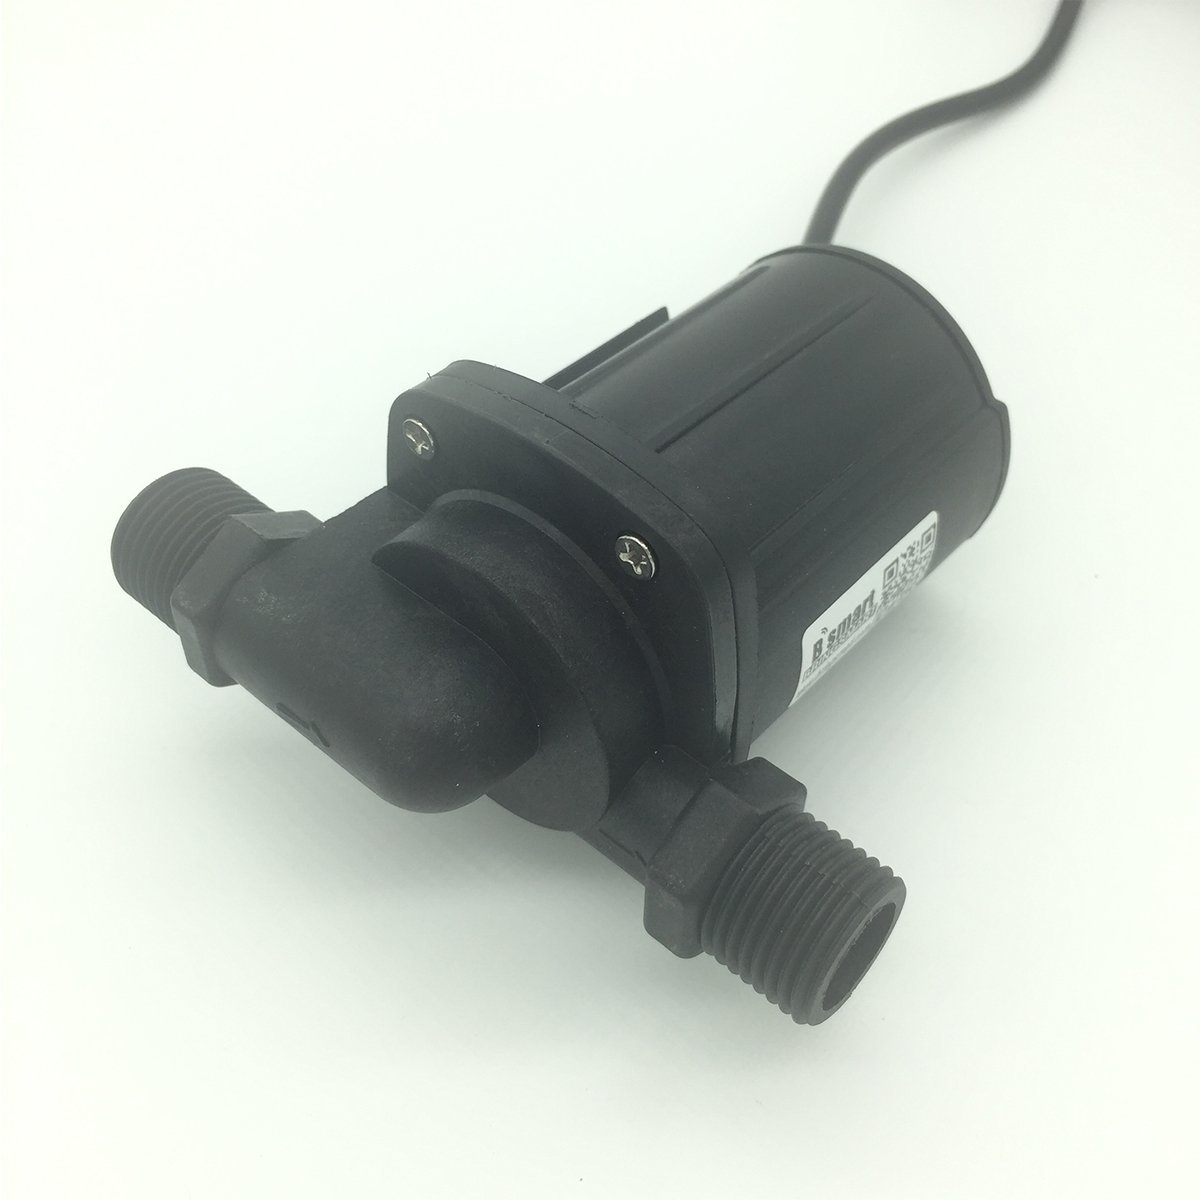 Bringsmart High Flow Rate 2000L/H 5M Mini Booster Pump 12V DC Brushless Submersible Fountain Water Pump (JT-1000C 12V)